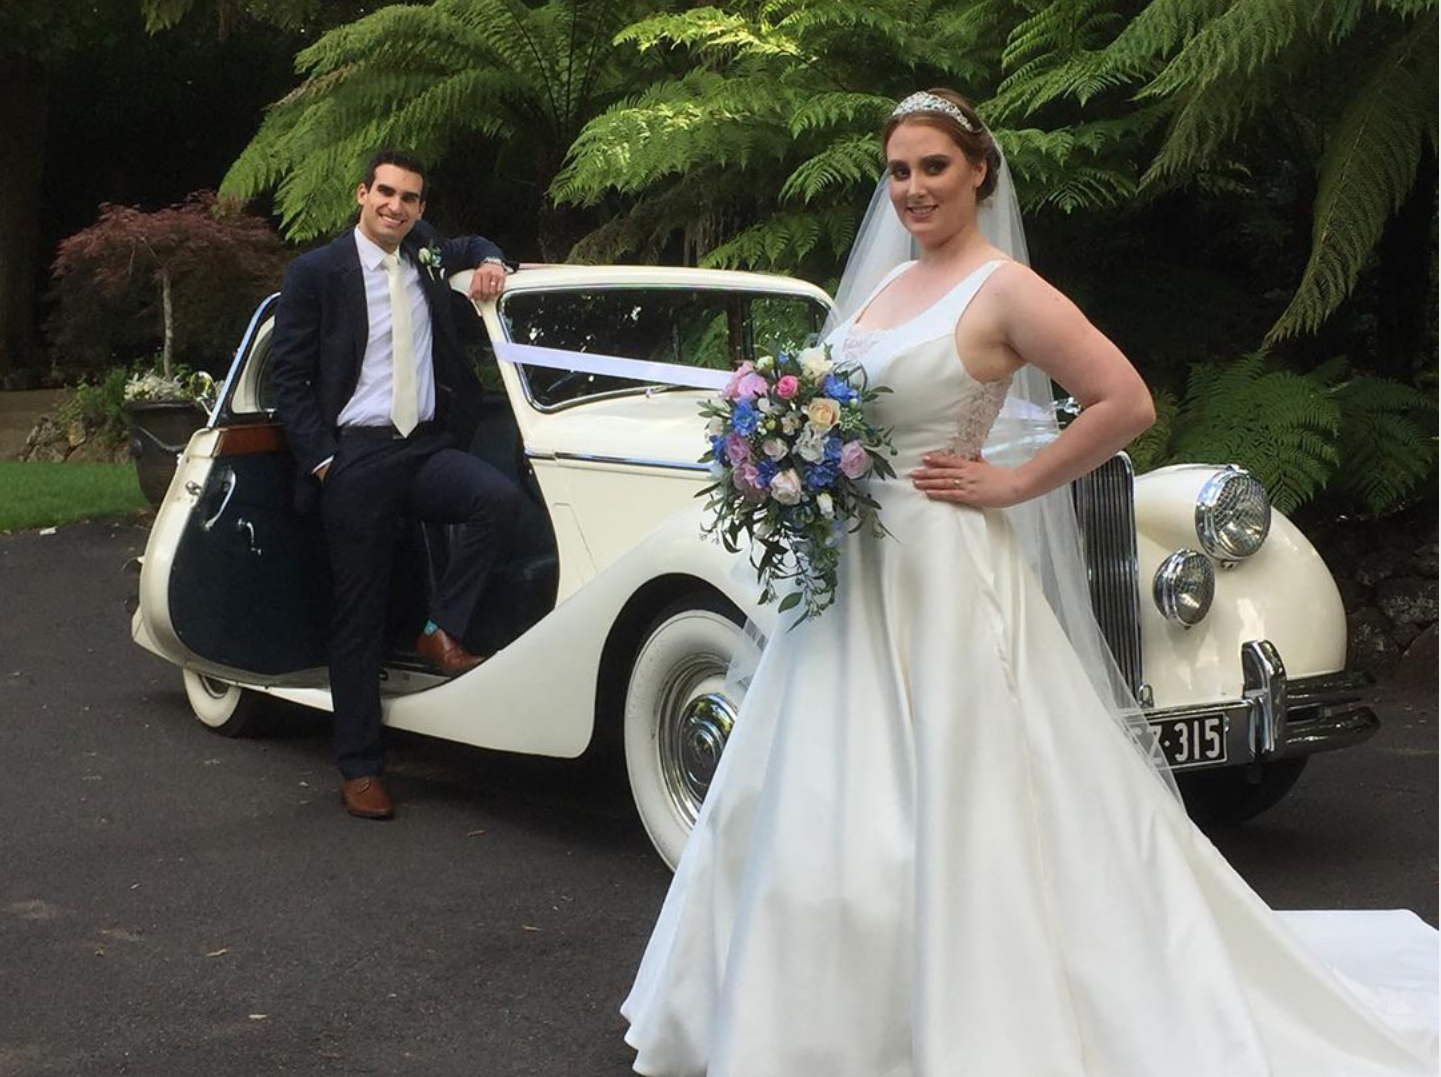 JC Jags - Nathania Springs Wedding Car Hire